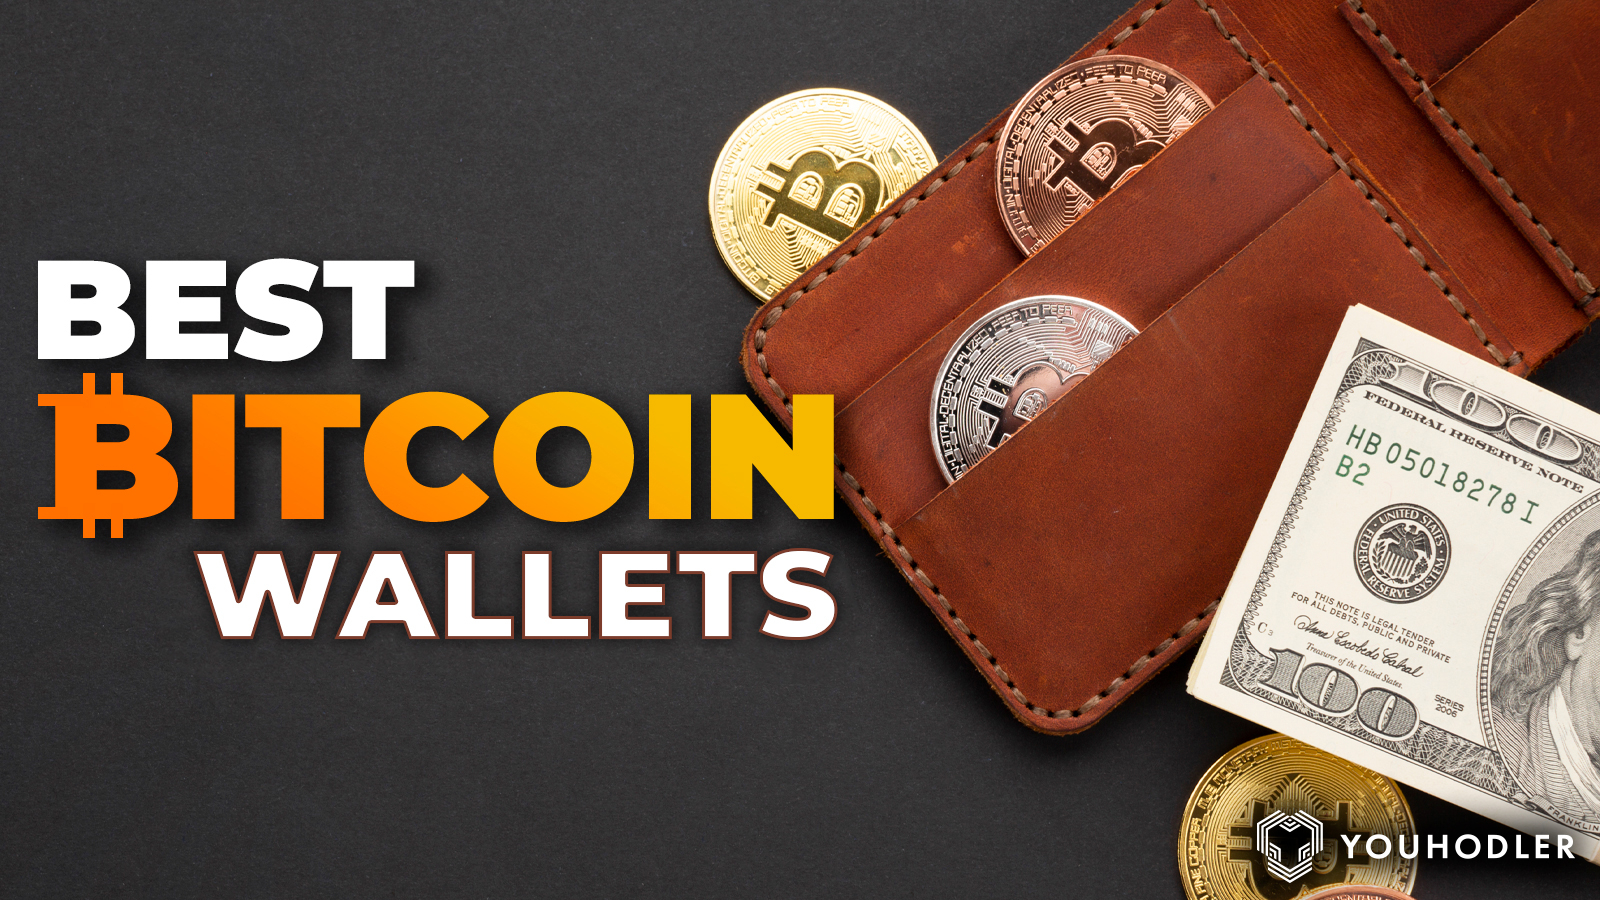 A picture of a leather wallet with Bitcoins coming out of it.